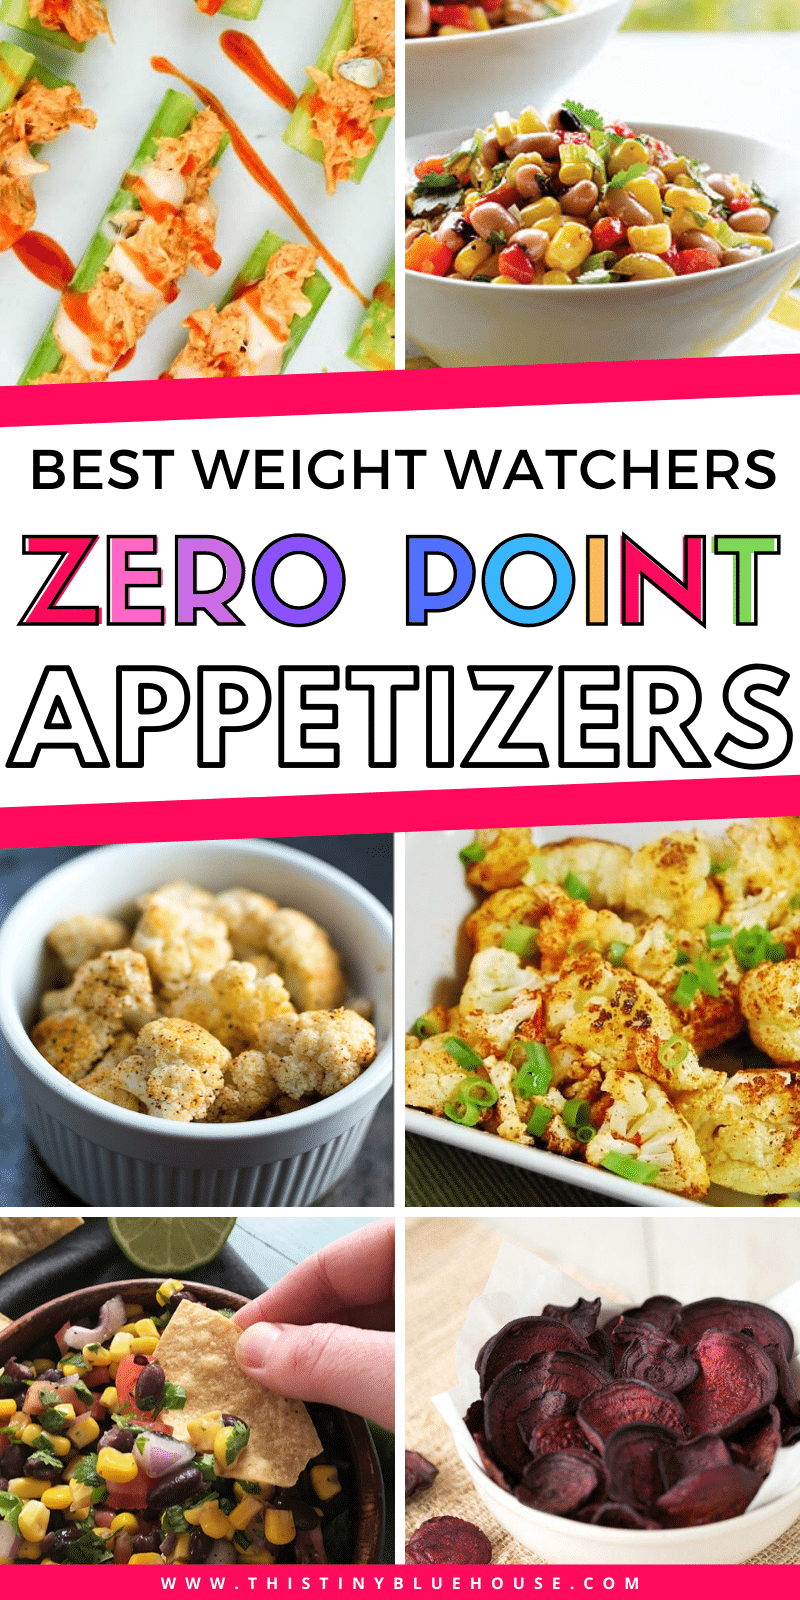 Here are 10+ zero point weight watchers appetizers from the ultimate collection of Zero Point Weight Watchers Meals and Snacks. From apps to main meals and even desserts these zero point weight watchers meal ideas are guaranteed to keep your diet interesting. #weightwatchers #weightwatchersforfree #weightwatchersrecipeswithpoints #weightwatchersfreestyle #weightwatcherssnacks #weightwatchersdesserts #weightwatcherszeropoint #weightwatcherzeropointrecipes #weightwatcherszeropointmeals #weightwatcherszeropointsnacks #weightwatcherszeropointdesserts